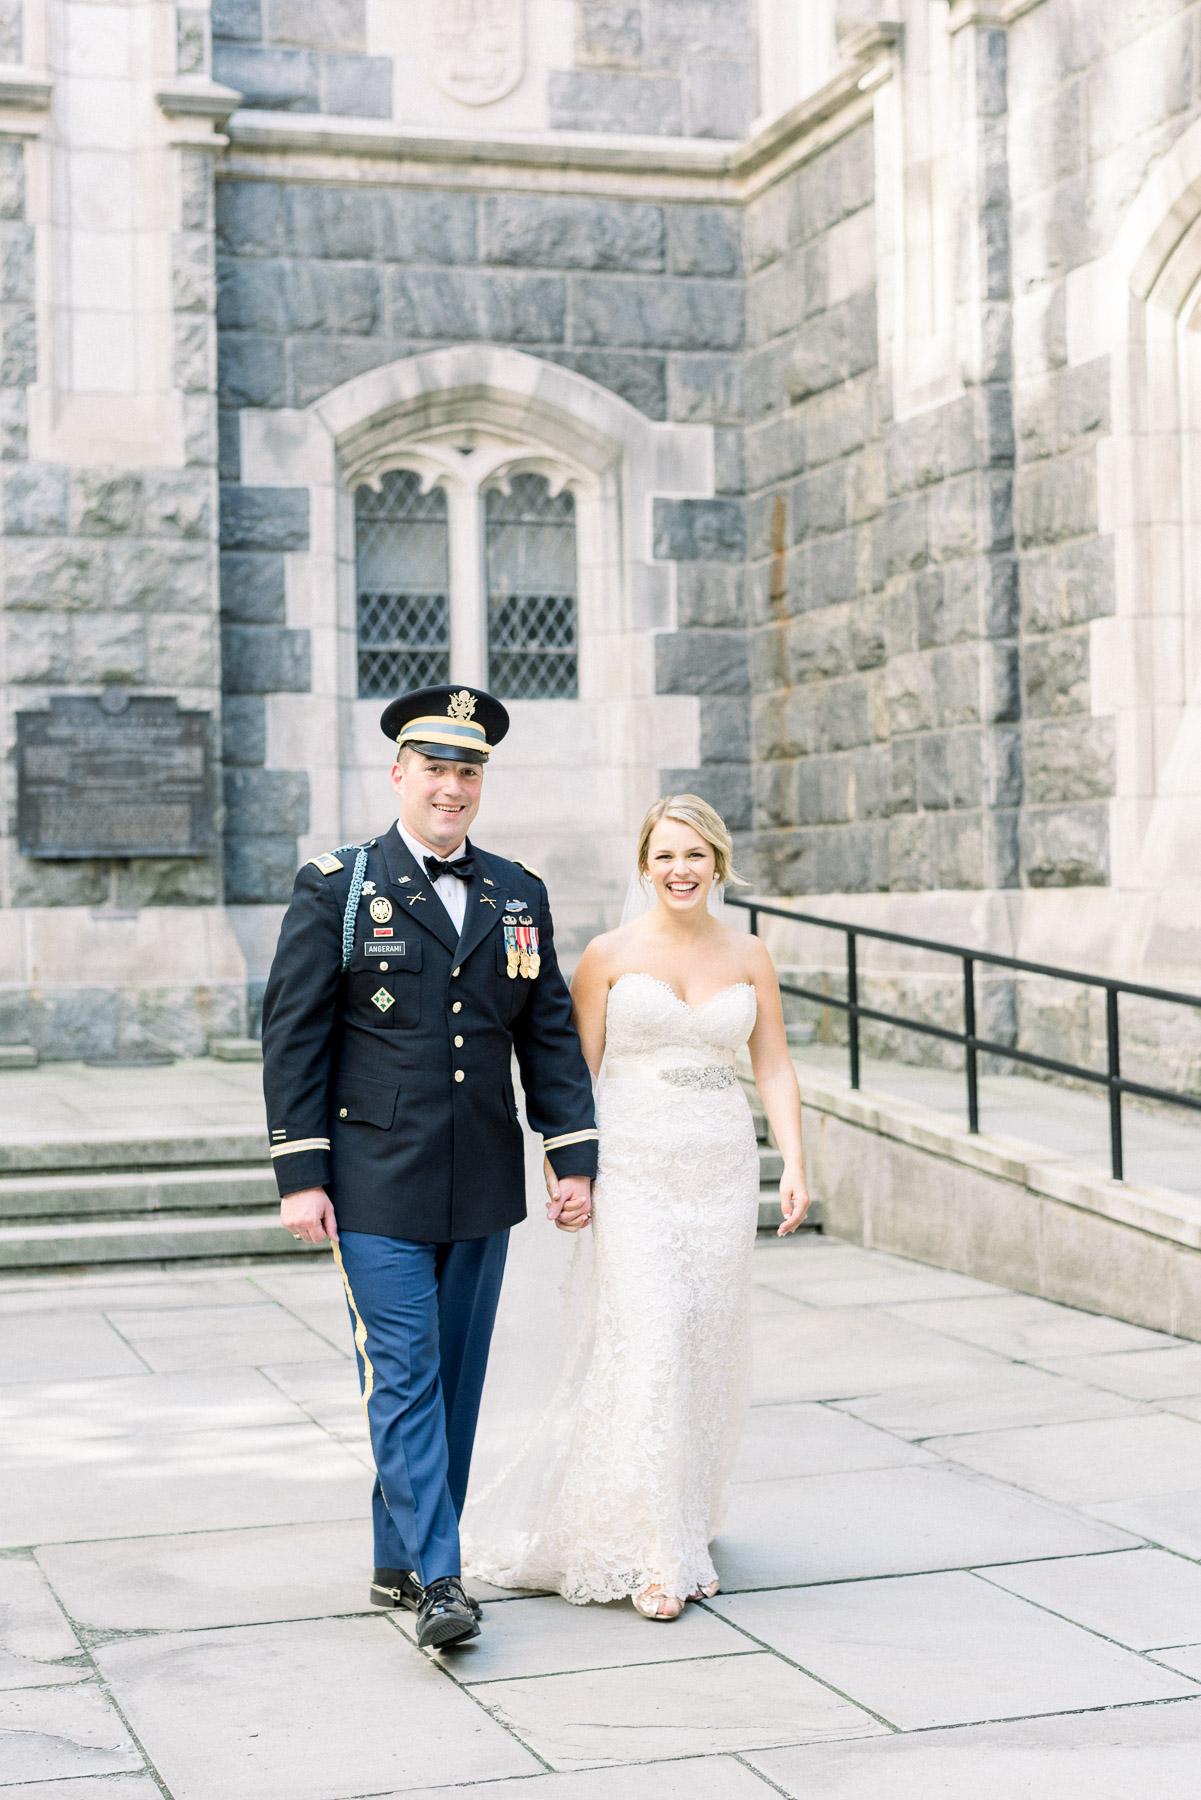 West Point Wedding by Michelle Lange Photography-46.jpg